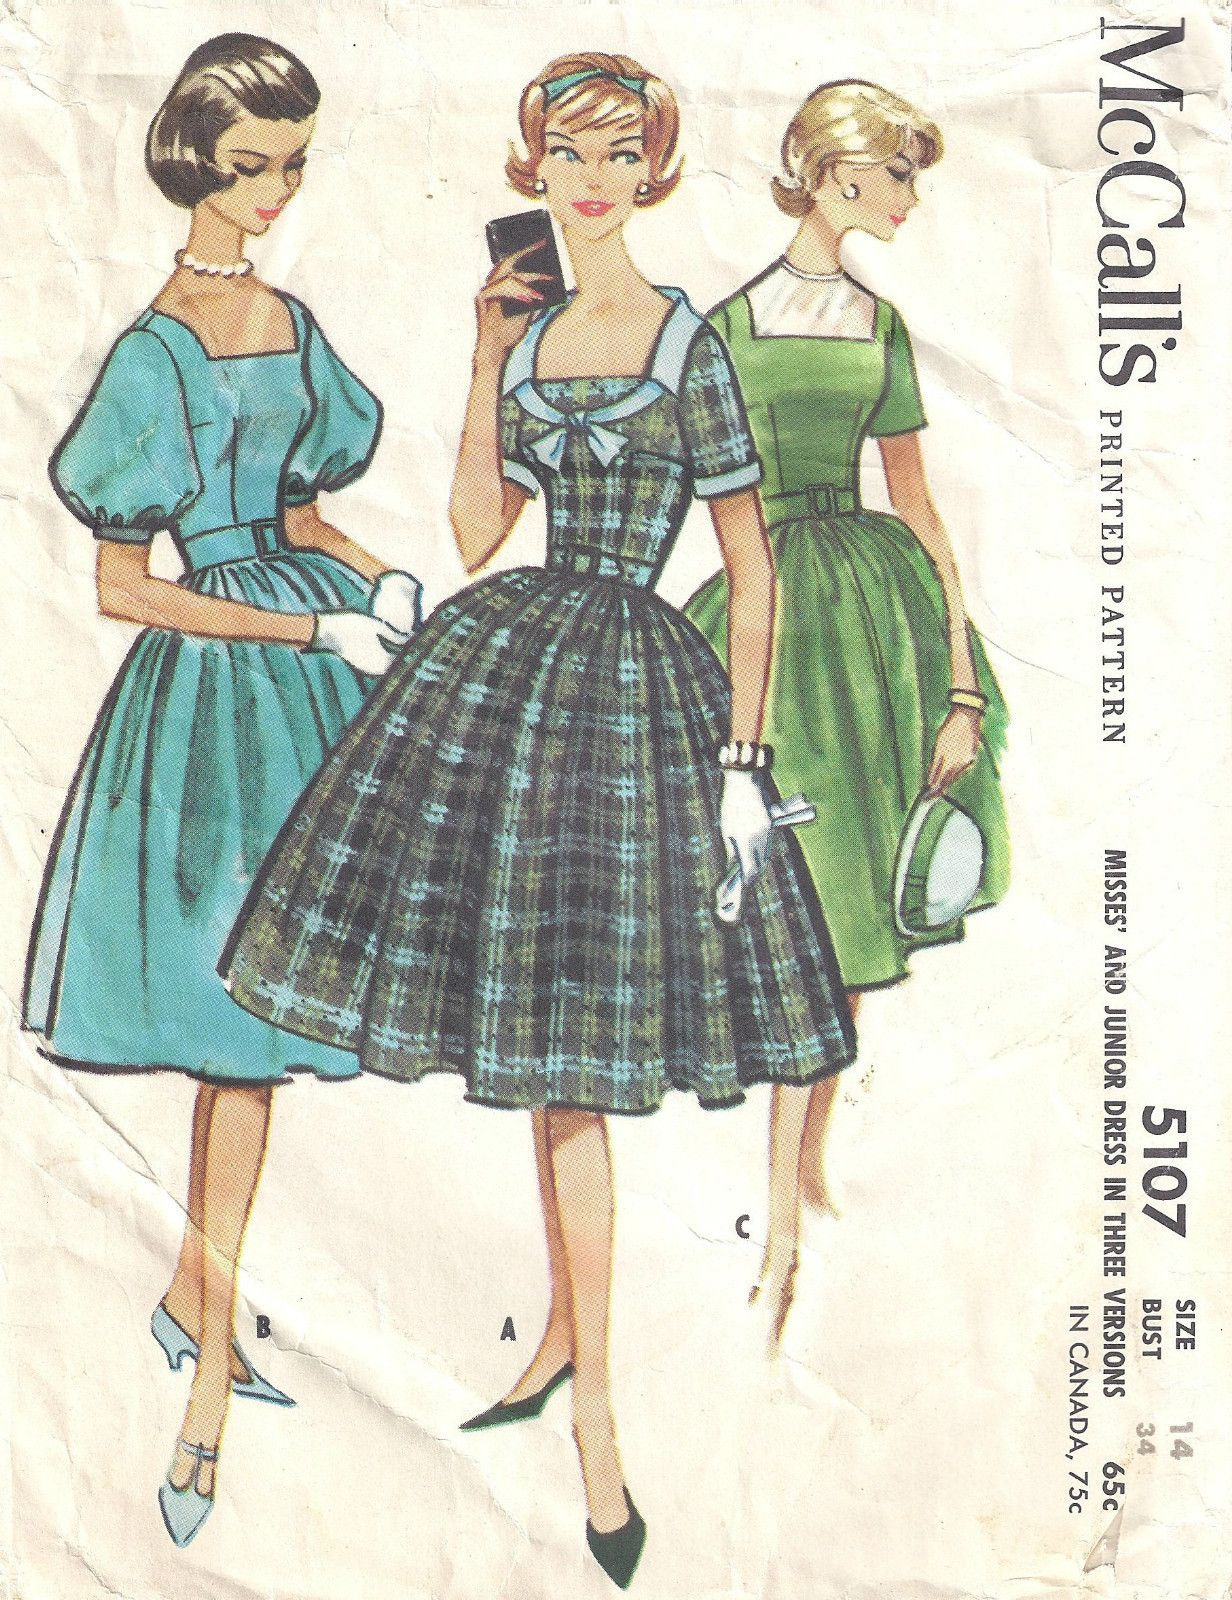 McCall's 5107: the trim on the plaid dress is gorgeous!